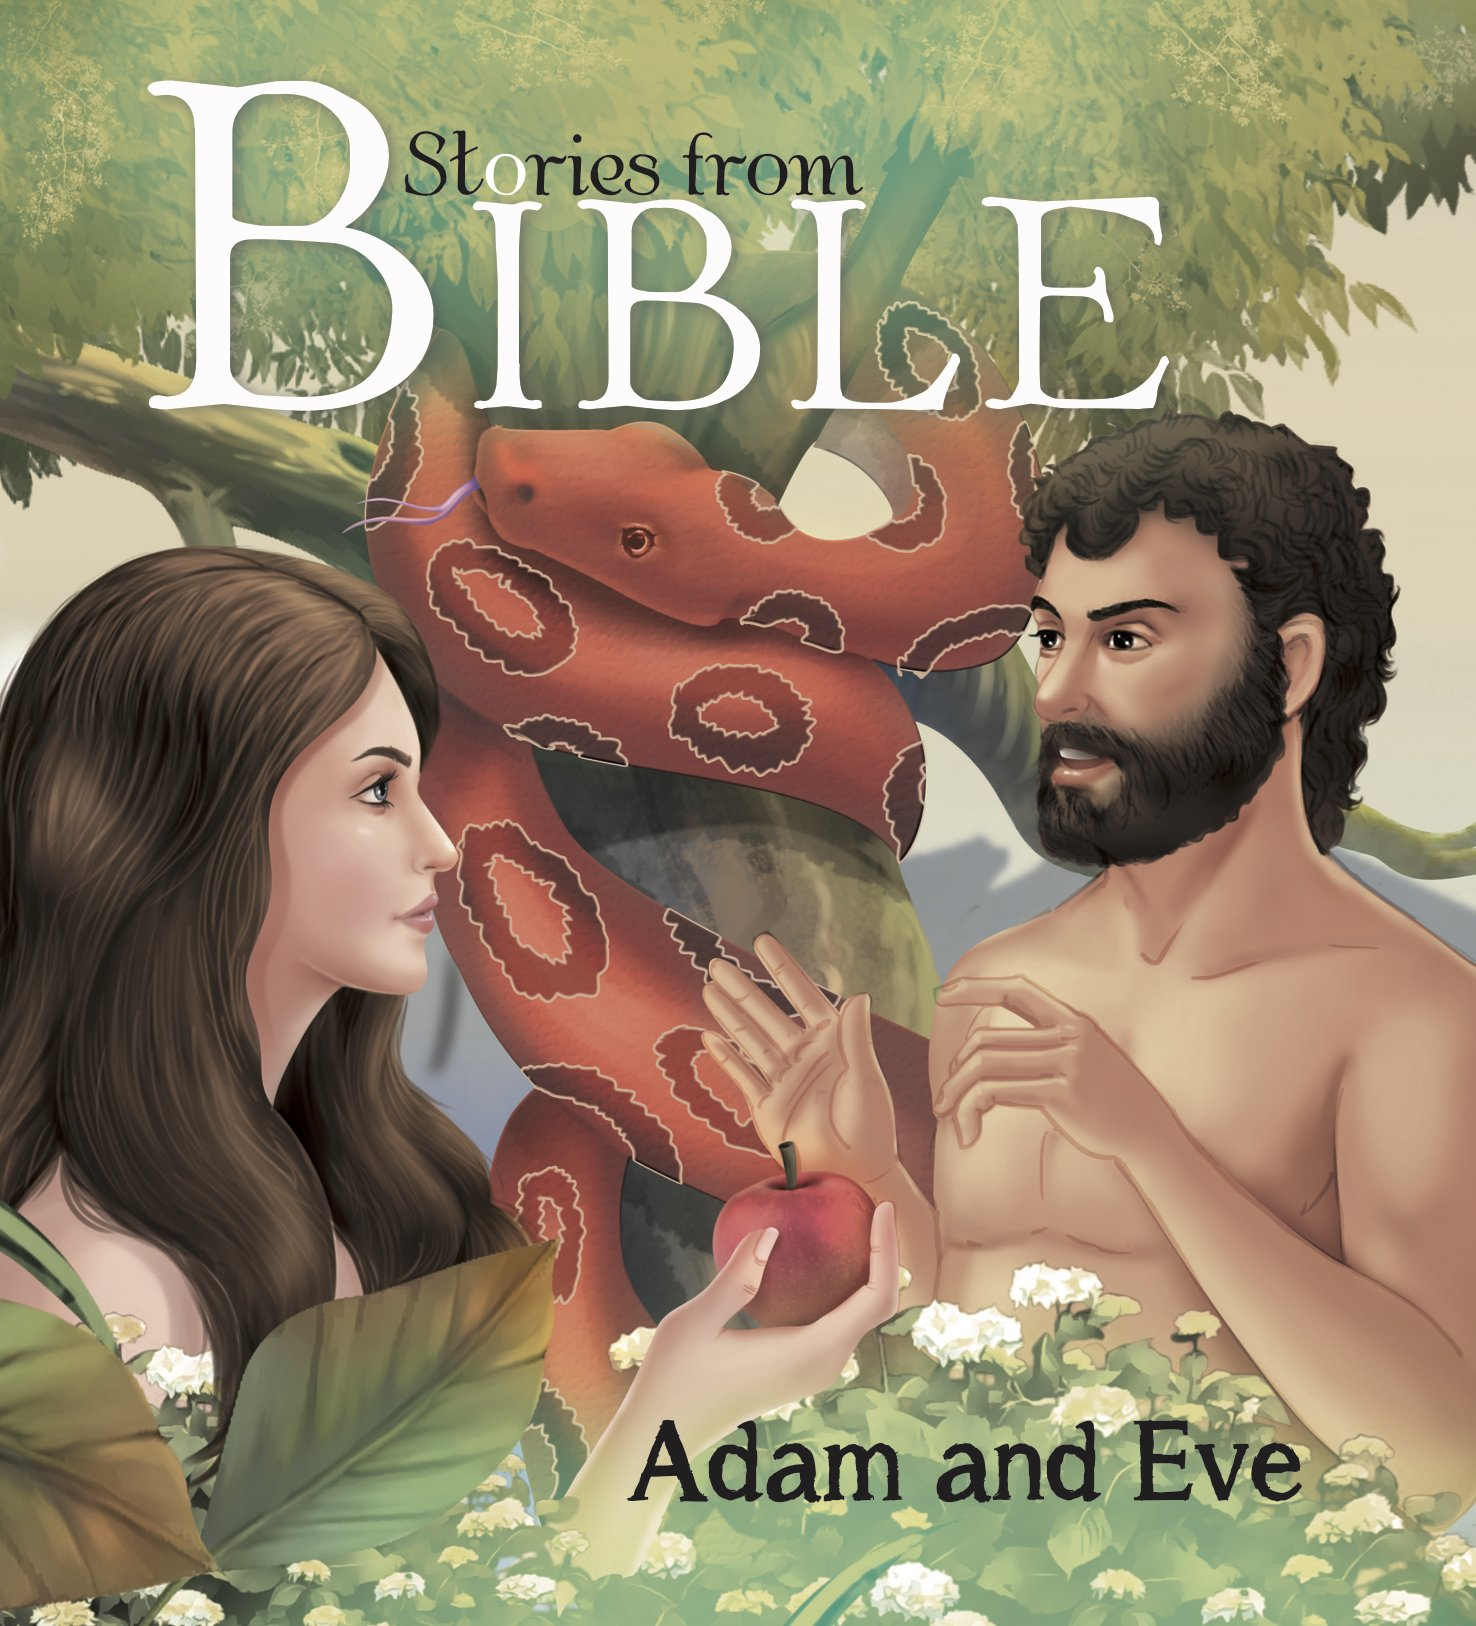 Stories from Bible: ADAM AND EVE